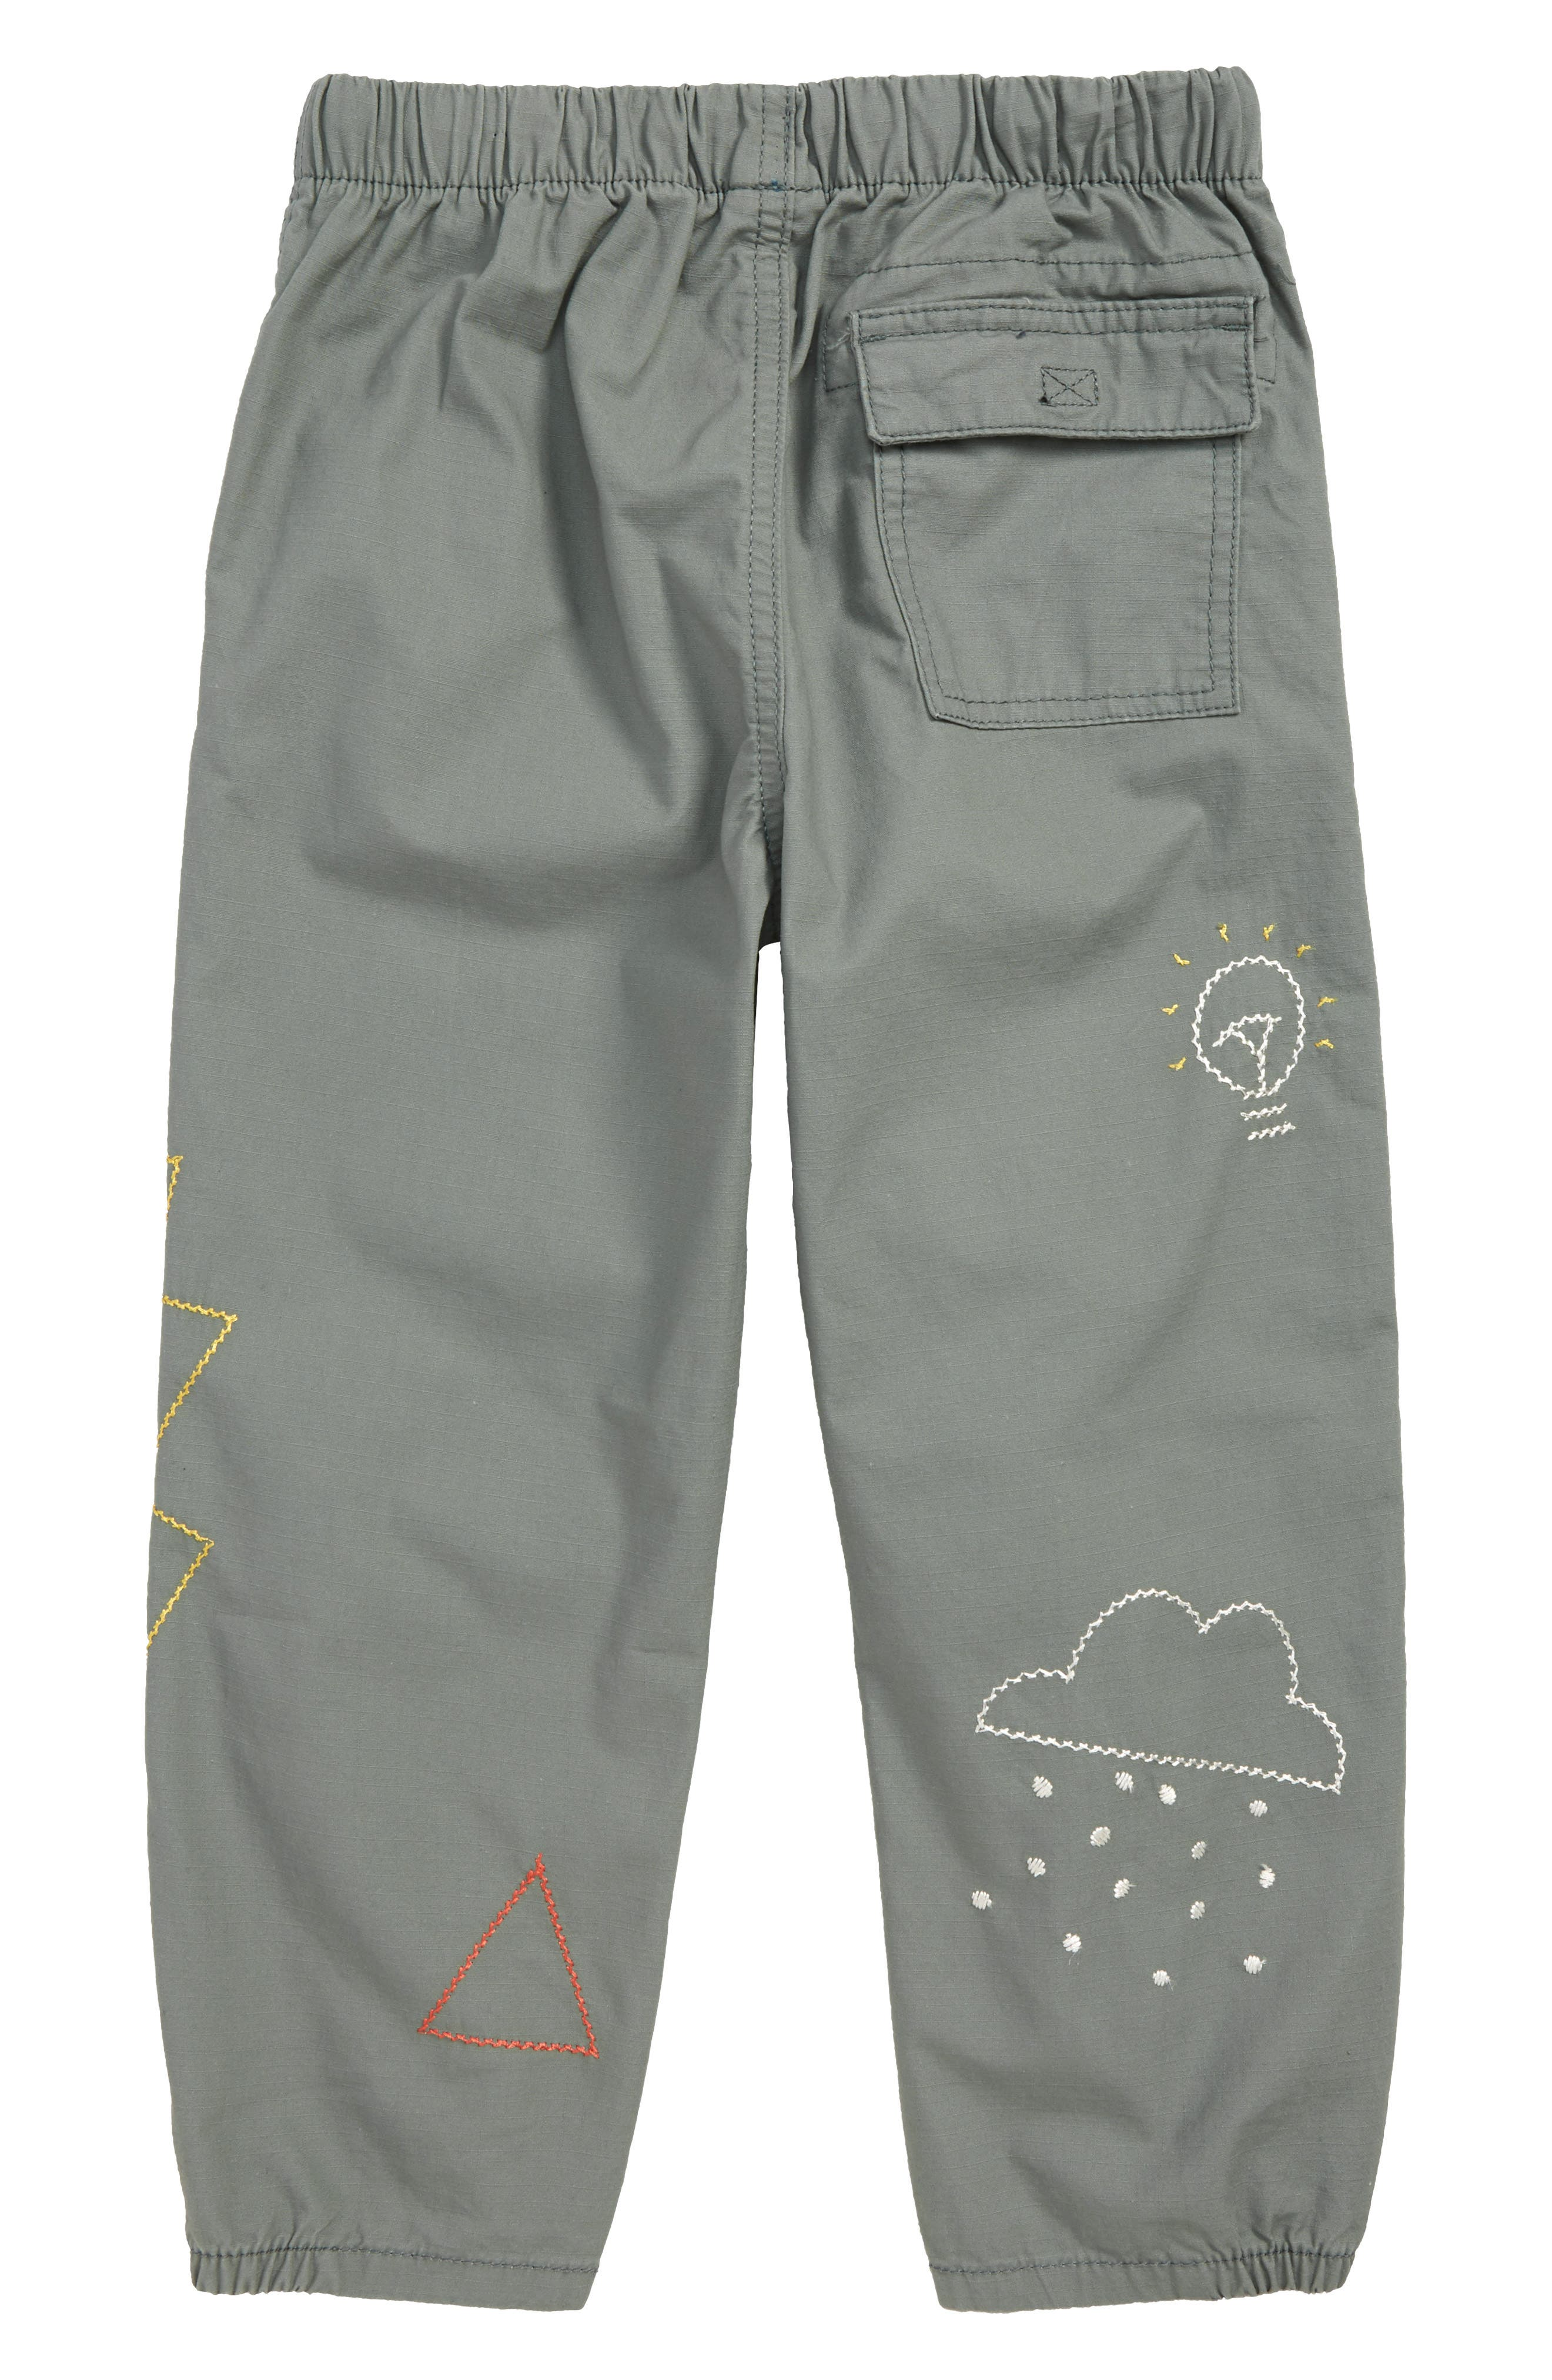 Embroidered Dart Pants,                             Alternate thumbnail 2, color,                             GREEN AGAVE DOODLES